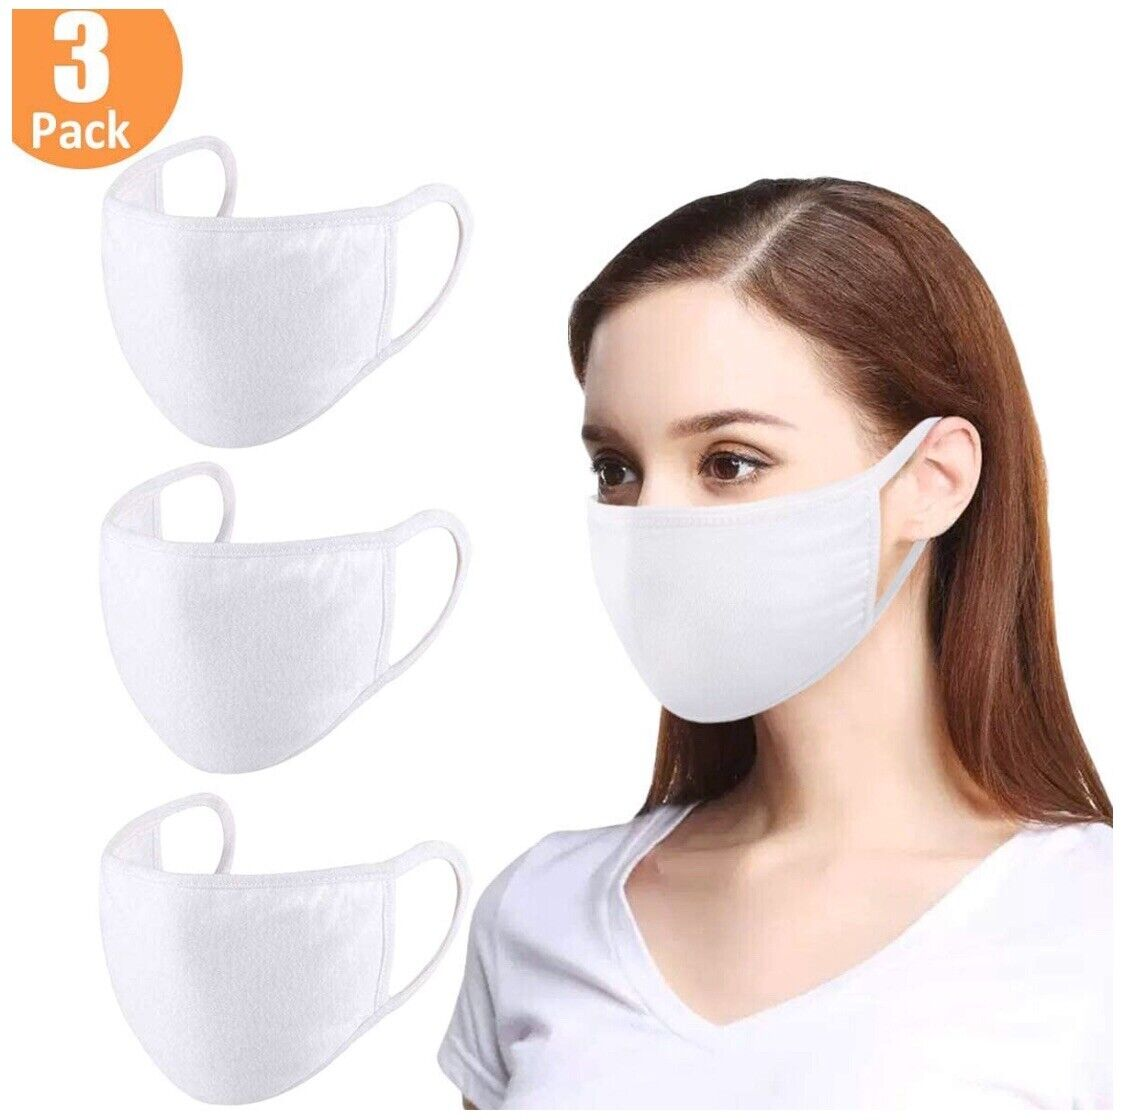 Face Mask Antimicrobial Premium Cotton, Two Layers with Pocket Filter, Pack of 3 Accessories